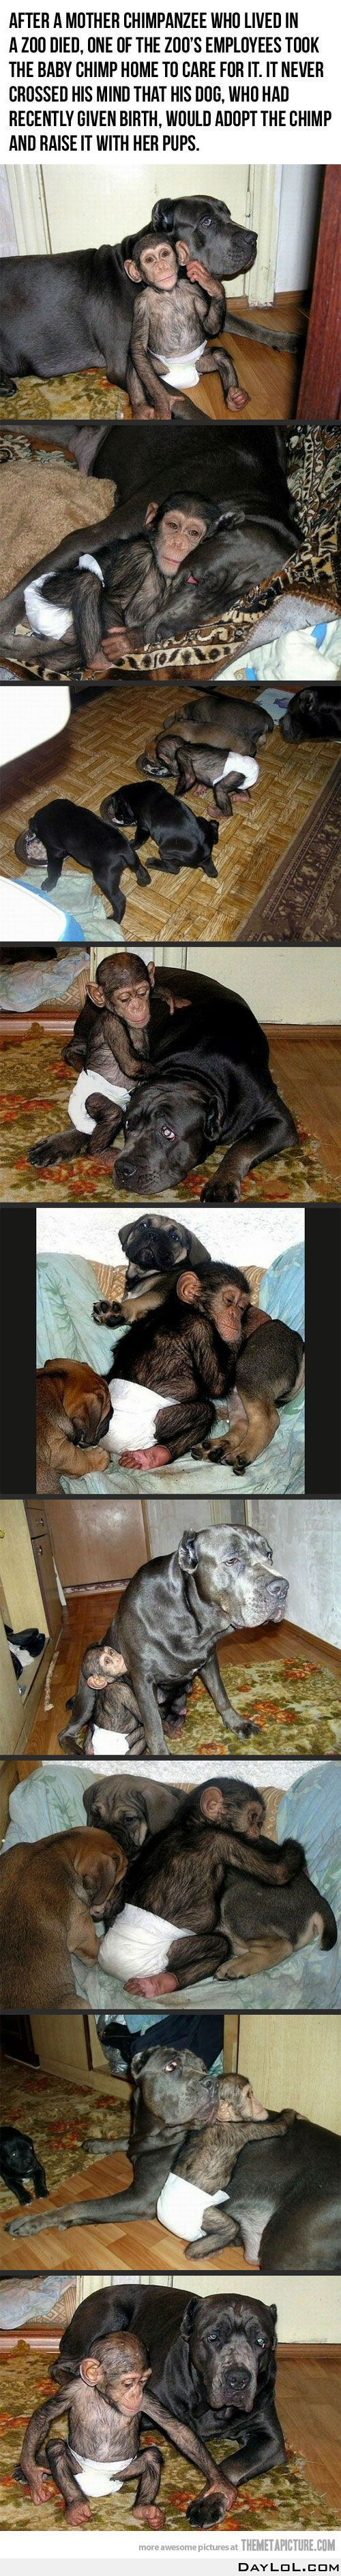 Baby chimpanzee adopted by a dog. So sweet, I like the picture of the chimp, eating with the other puppies.